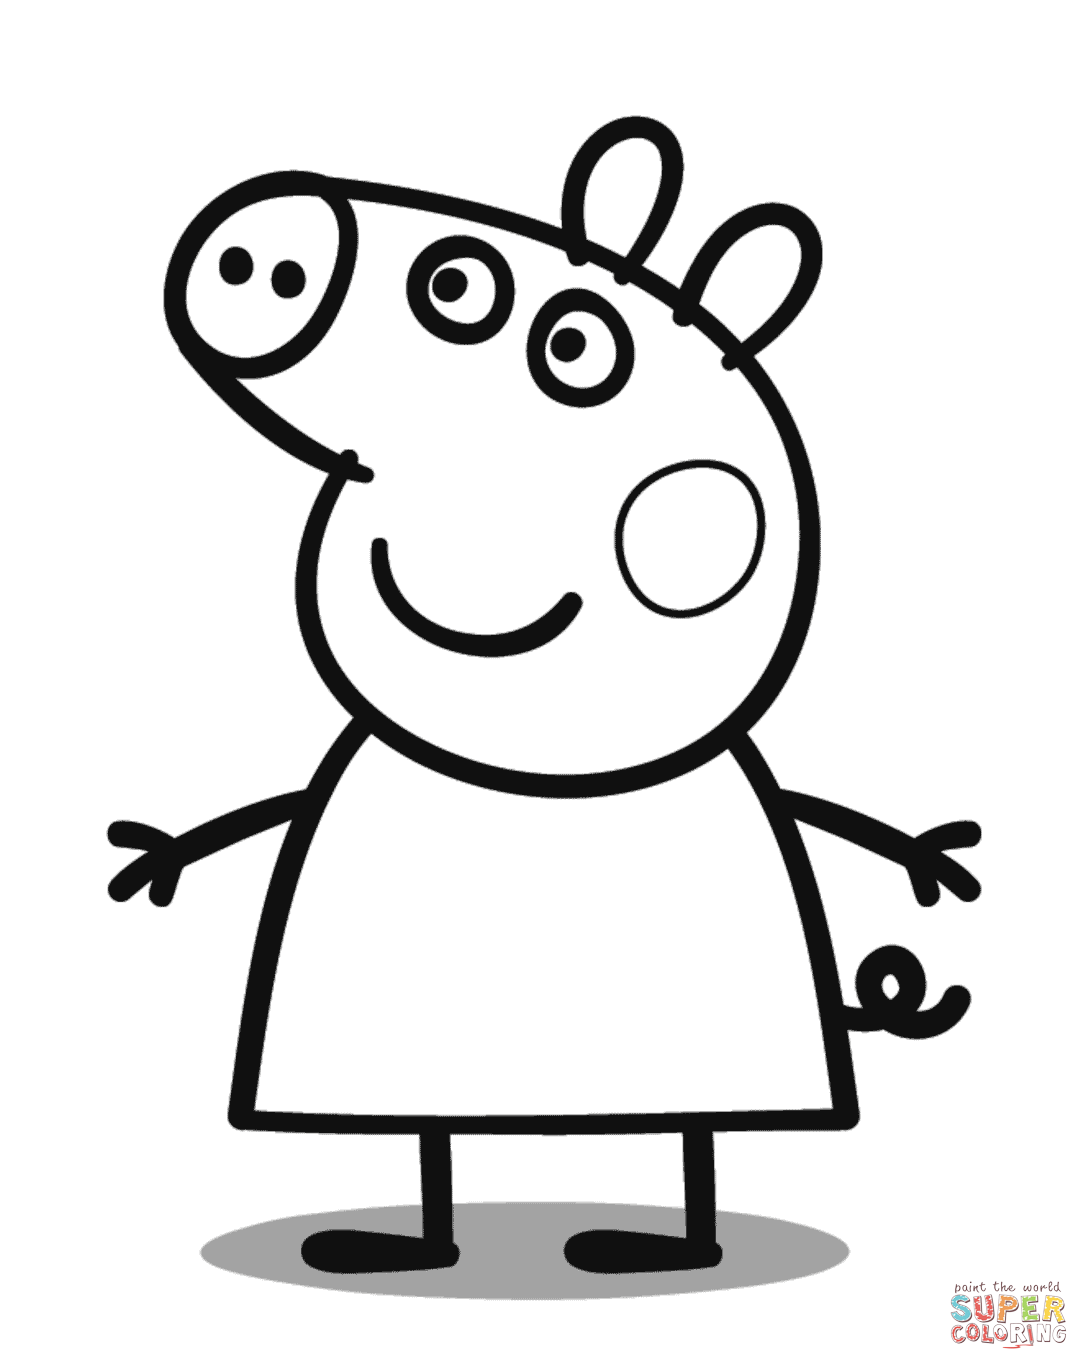 1089x1370 Peppa Pig Coloring Pages Free Coloring Pages